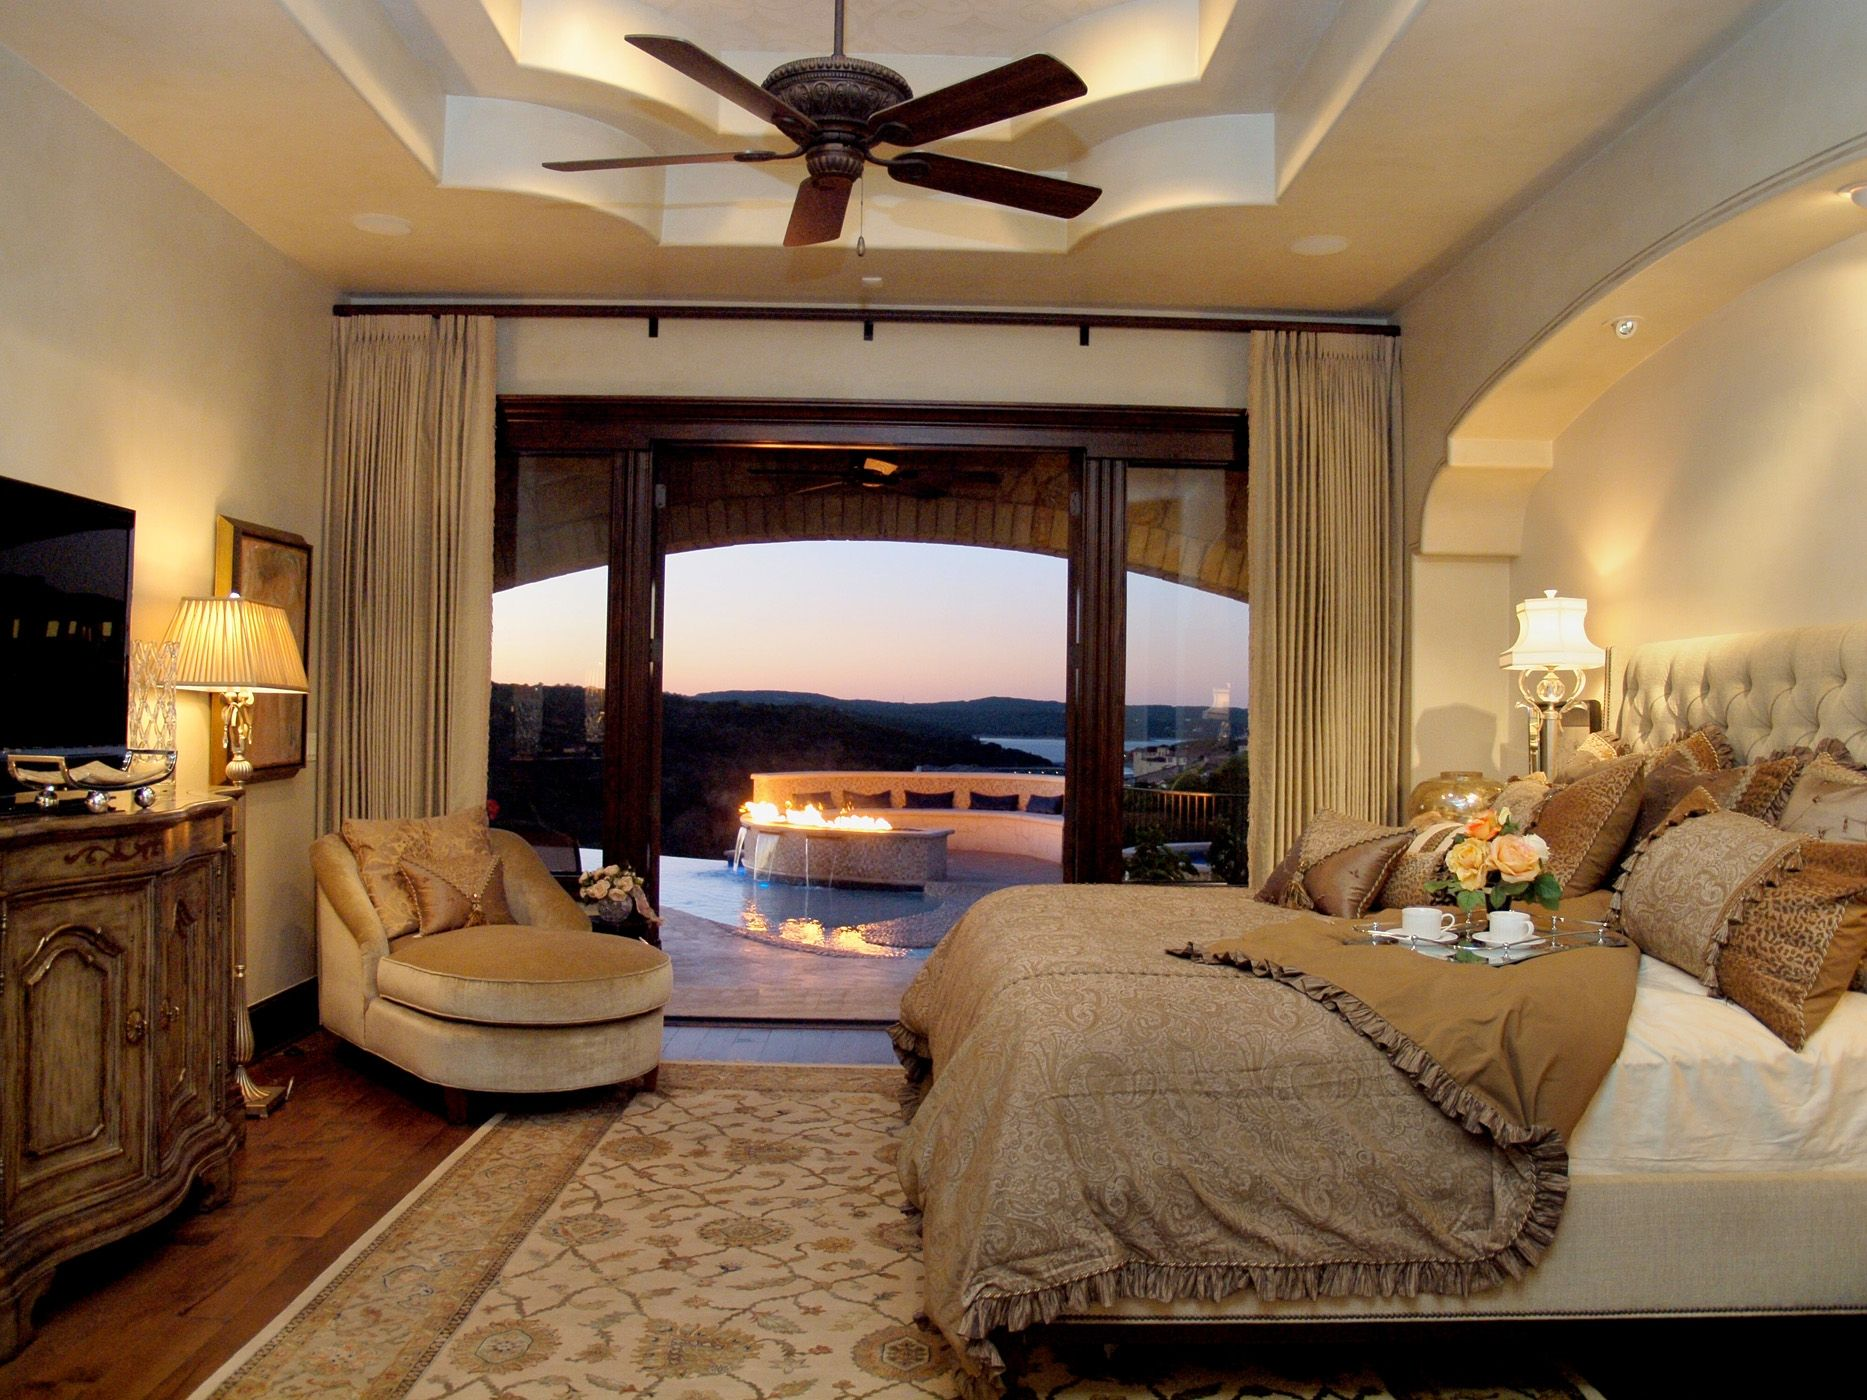 Luxurious Master Bedroom Interior For Your Sweet Home Rough Hollow Elegant Master Bedroom Sunset Views Lake